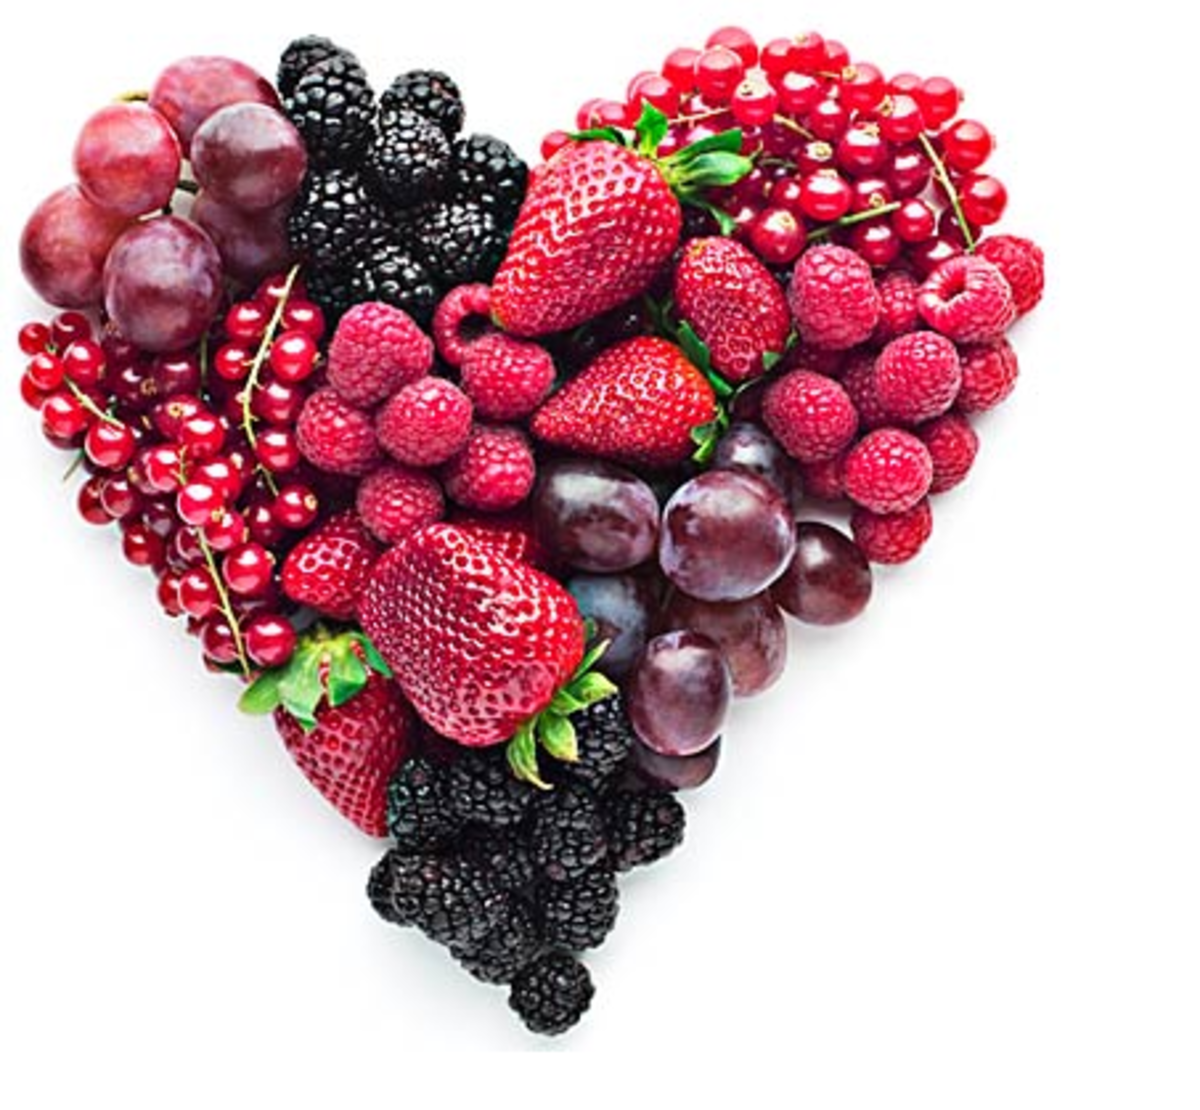 Blueberries, raspberries, strawberries, and blackberries are high antioxidant foods.  Antioxidants have been known to fight cancer and the blahs.